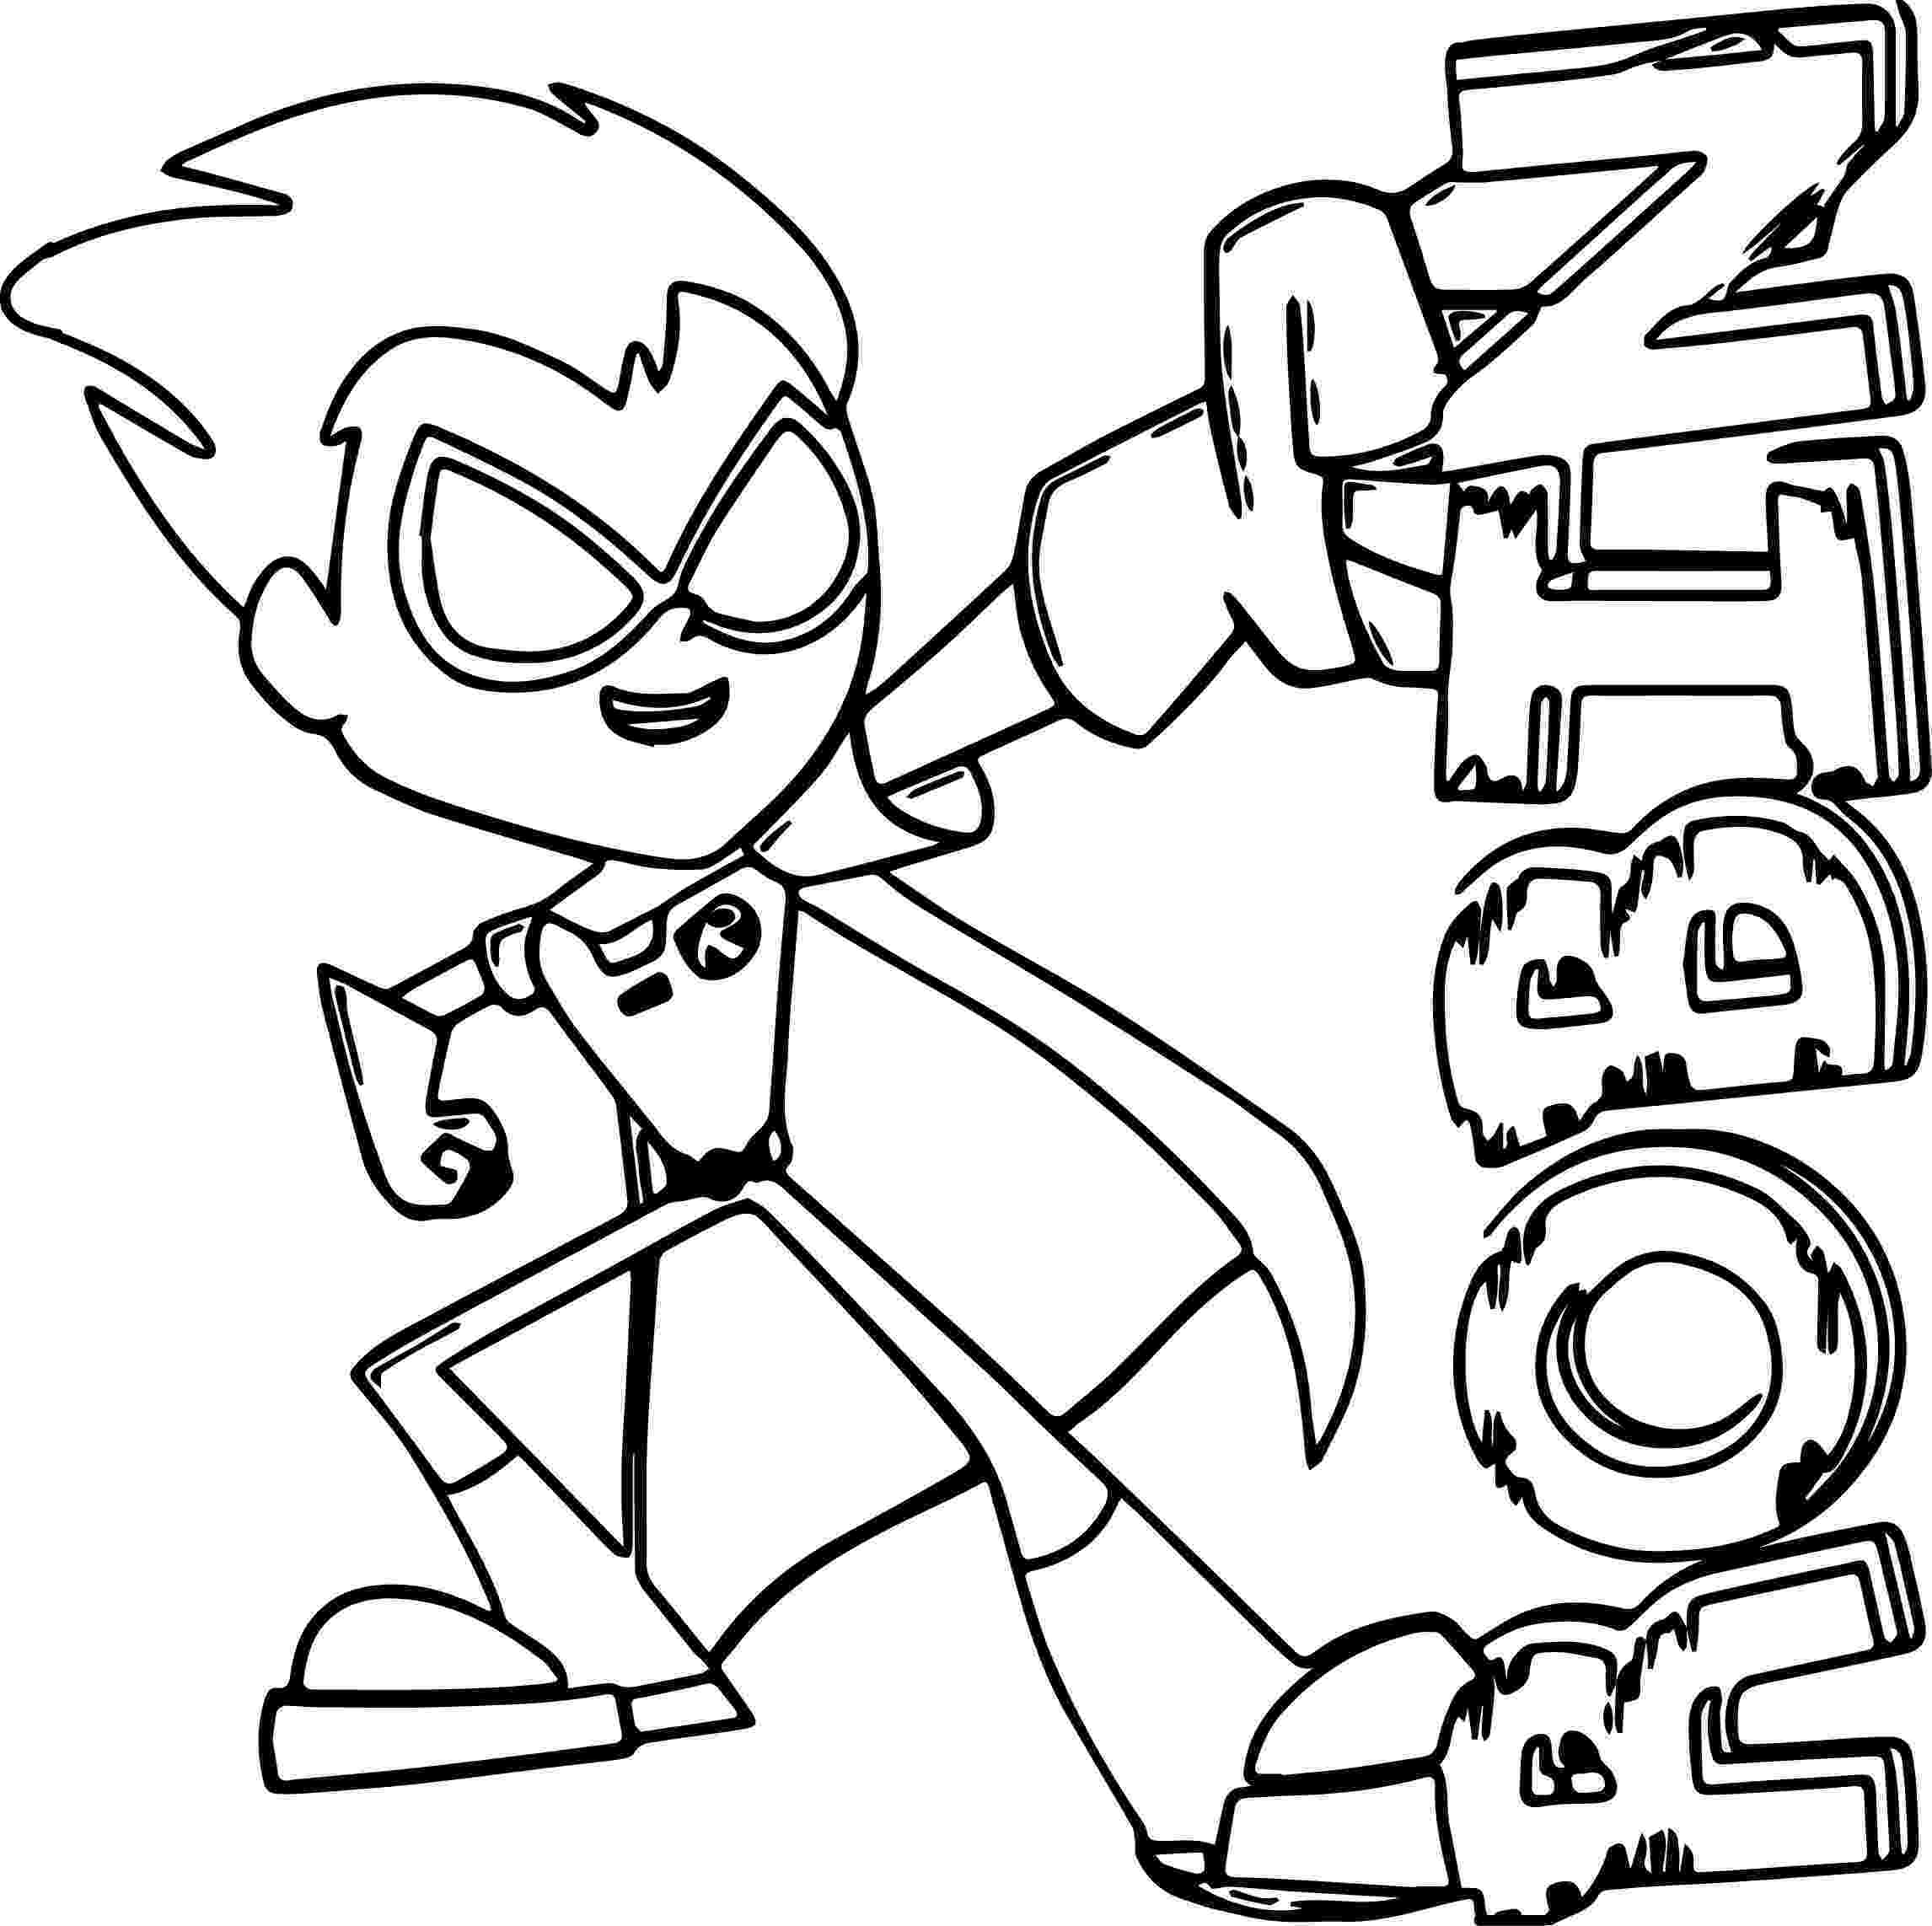 teen titans go coloring pages teen titans coloring pages best coloring pages for kids teen titans go coloring pages